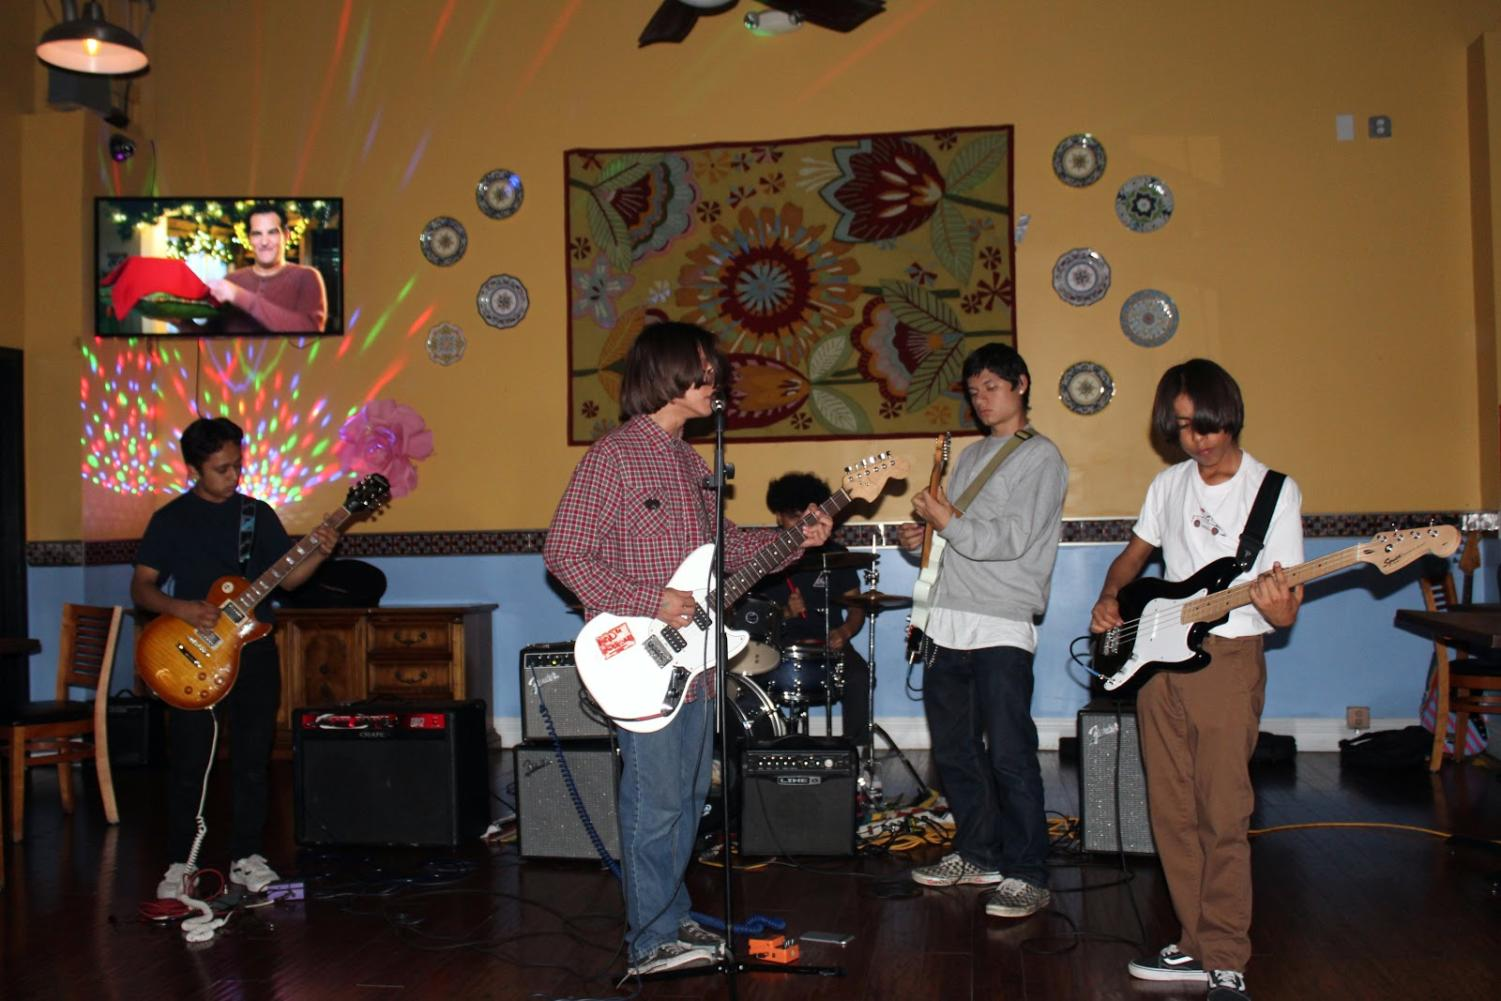 (From left to right) Guitarist Chris Munoz, Guitarist and Singer Brandon Mazon,  Drummer Yoshi Garcia, Danny Rico, Irvin Martinez